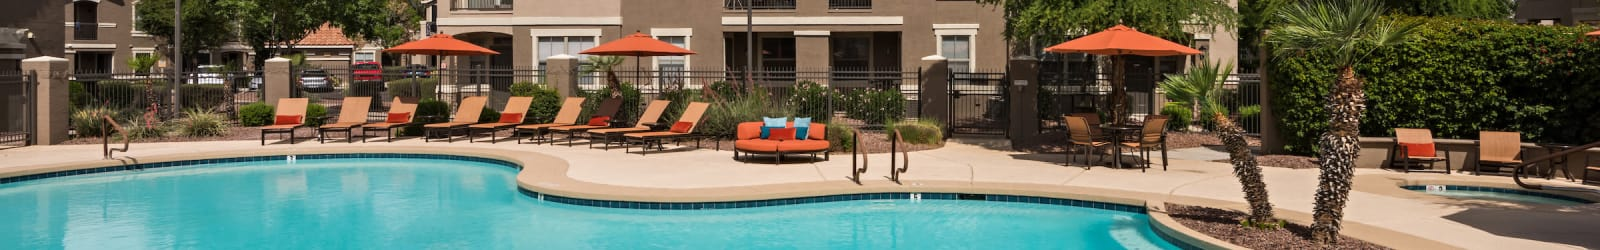 Apply at Villas on Hampton Avenue in Mesa, Arizona